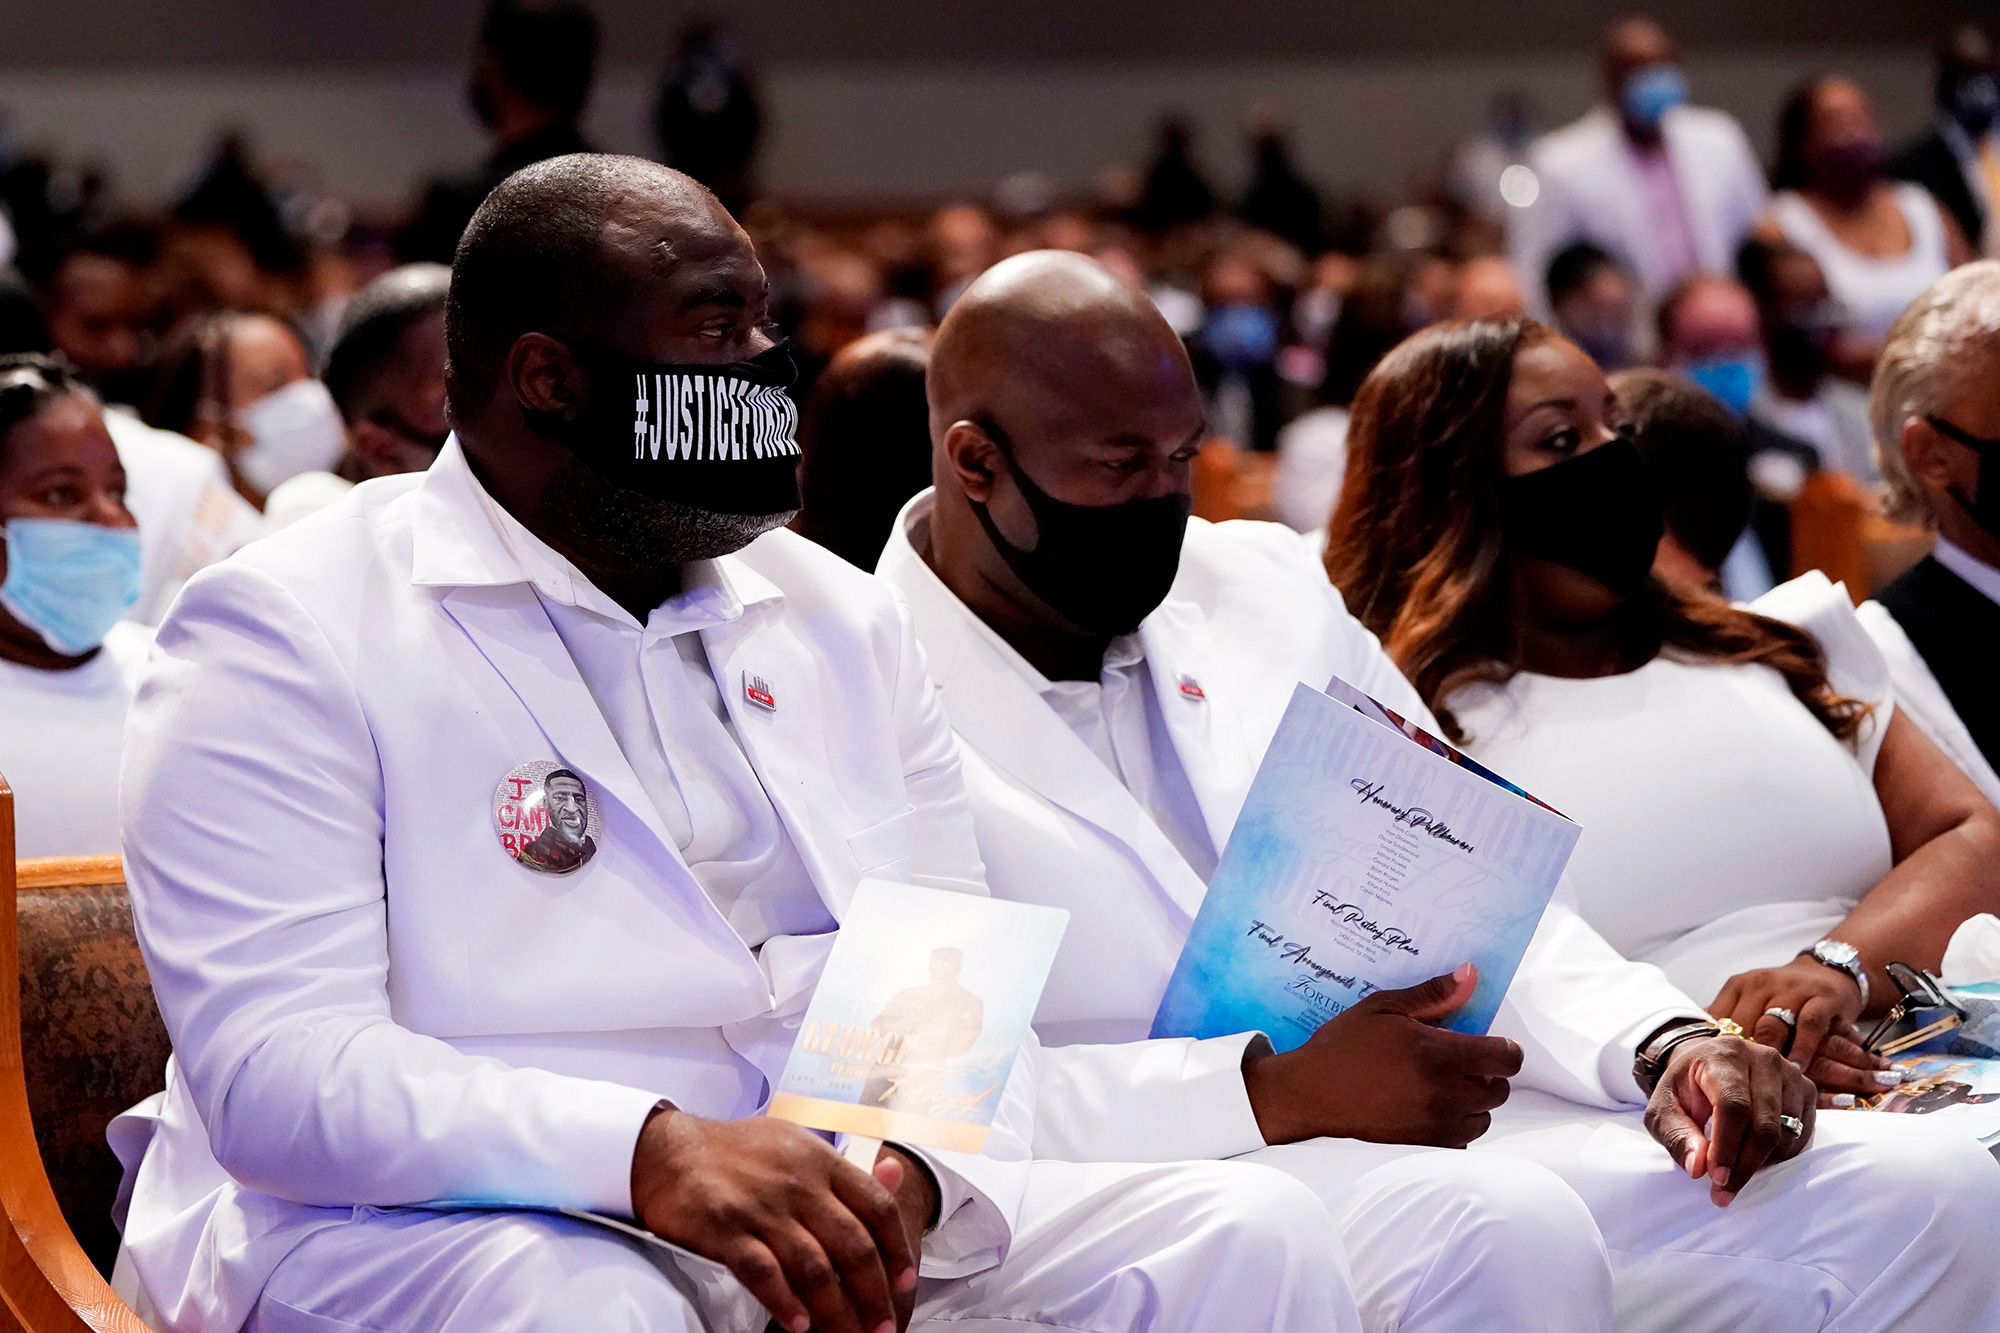 Rodney Floyd (L), and Philonise Floyd (C) brothers of George Floyd, attend their brother's funeral service on June 9, 2020, at The Fountain of Praise church in Houston, Texas.